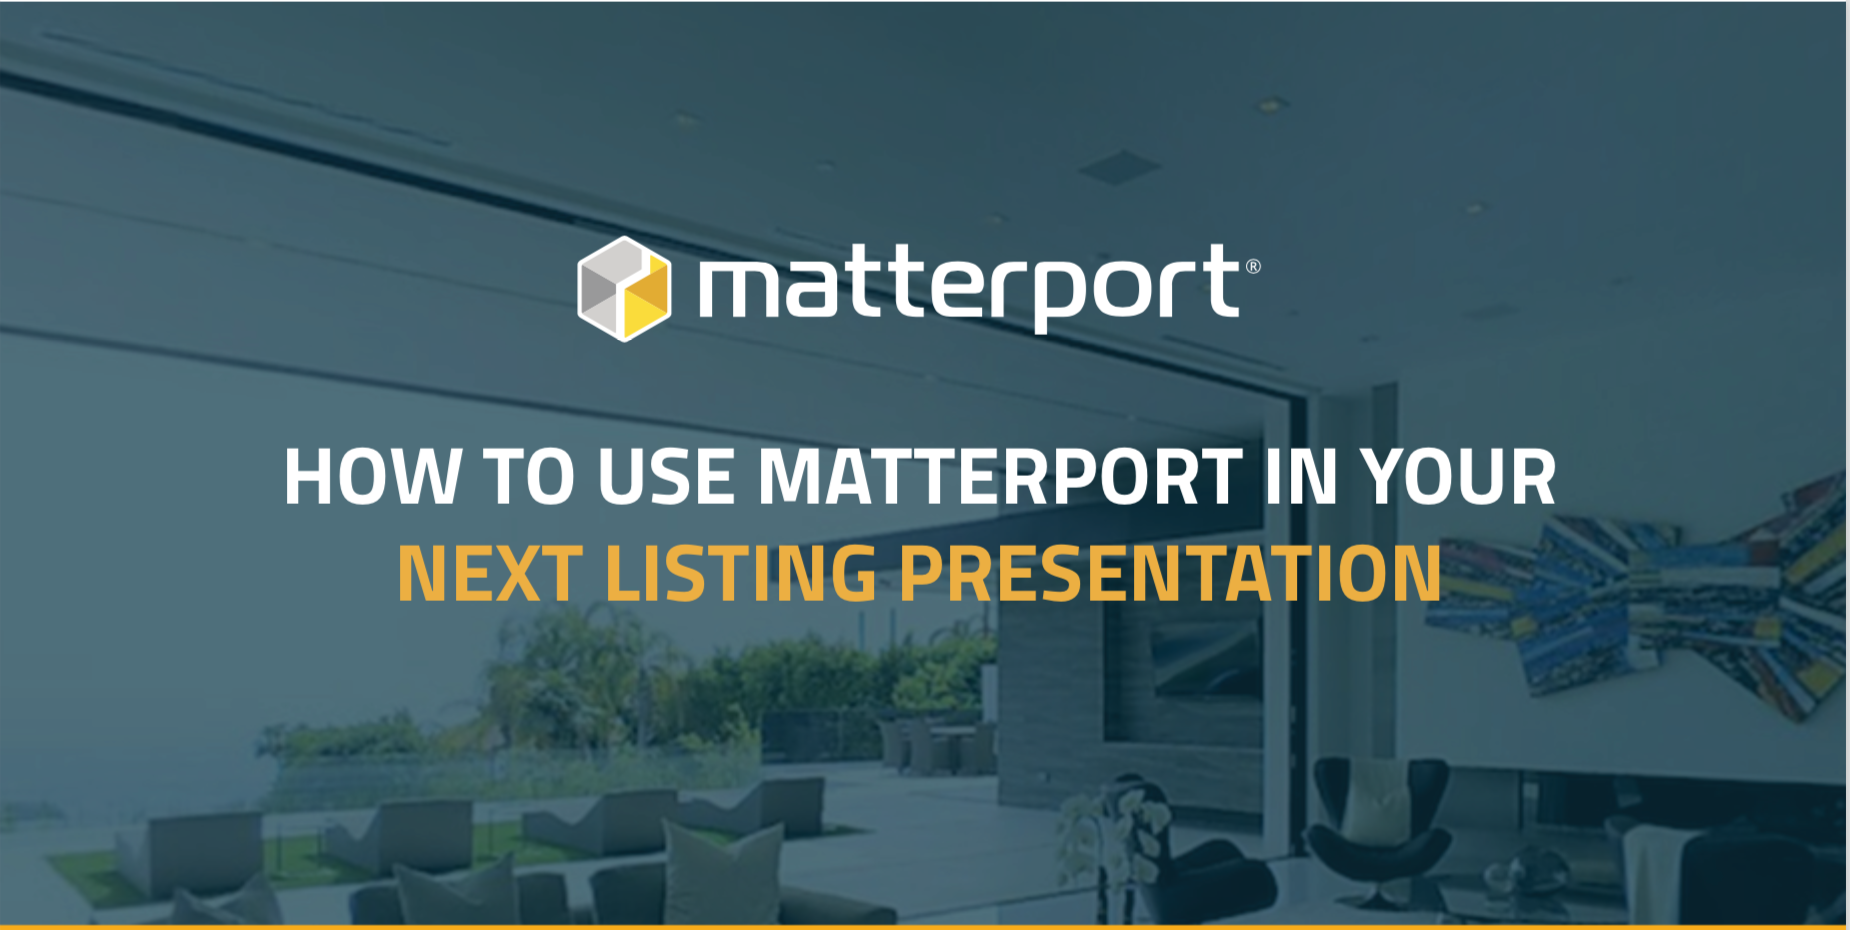 3D Walkthroughs And Virtual Reality To Win More Leads Or Customers With Matterport South Africa!